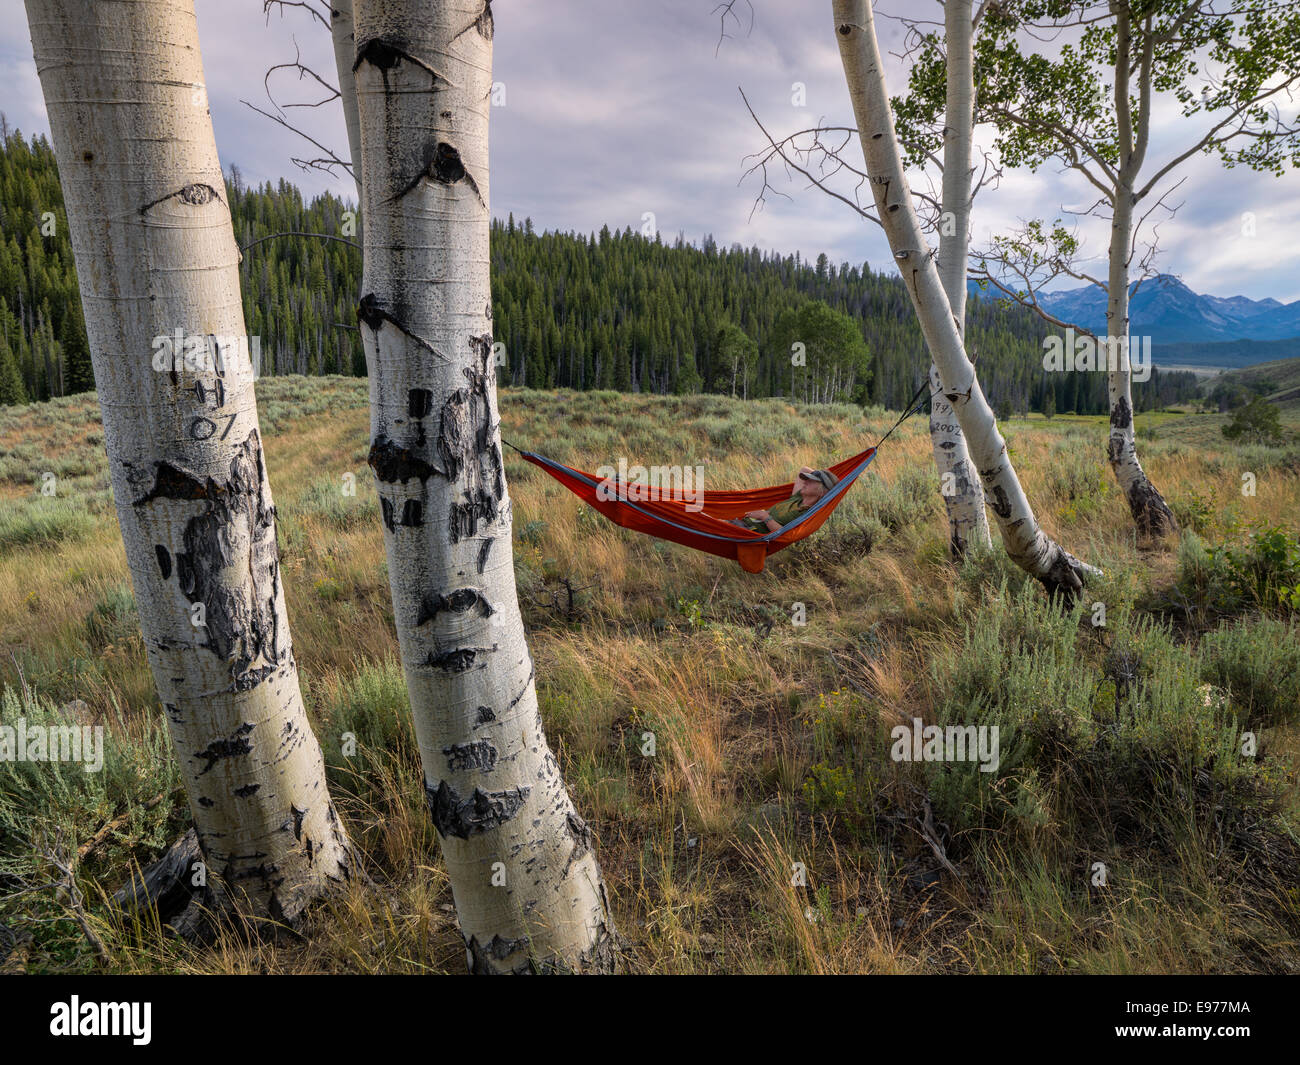 Nothing like a relaxing day in a hammock on a grassy ridge line overlooking the Sawtooth Wilderness. - Stock Image